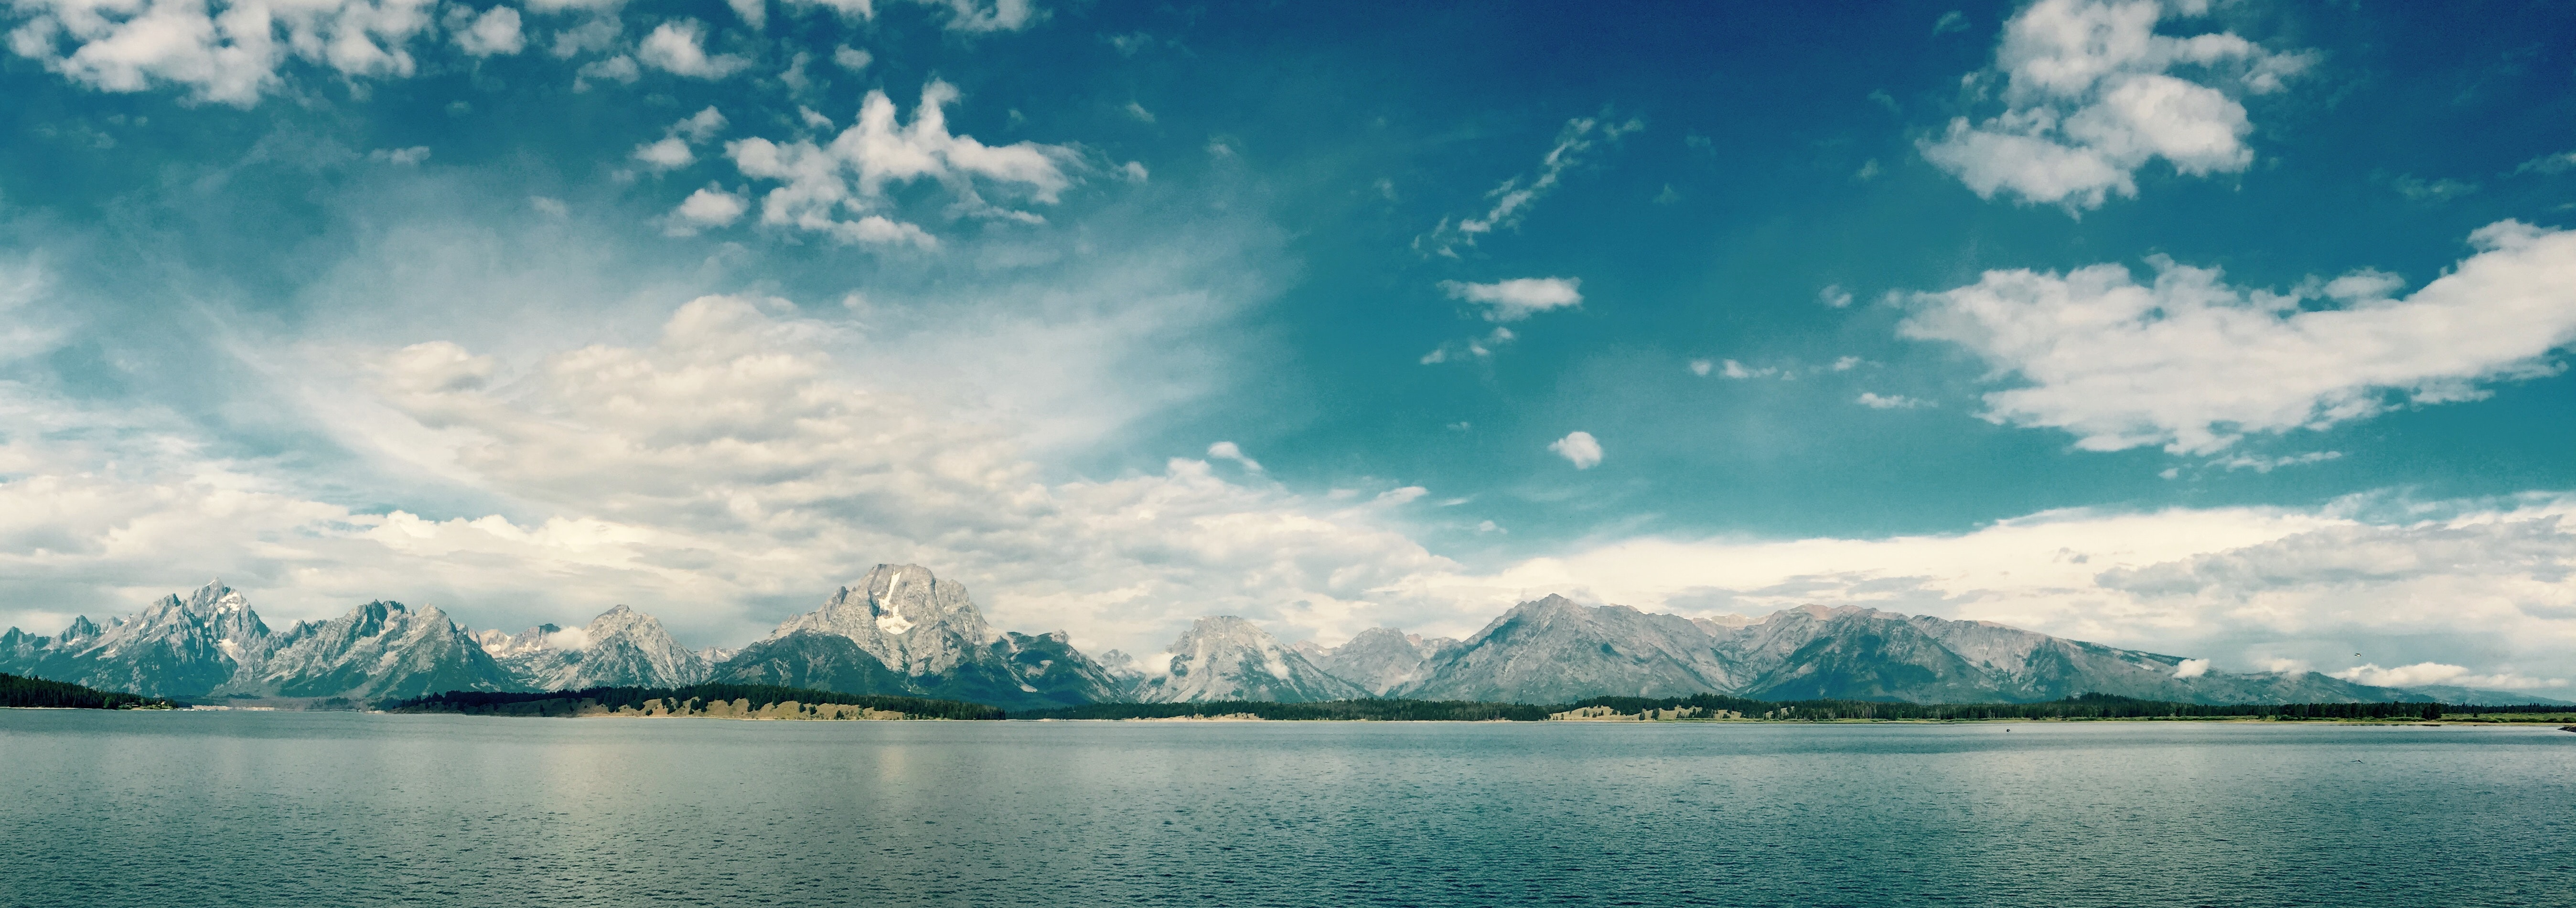 A panorama of a lake with mountains crowning the horizon in Grand Teton National Park